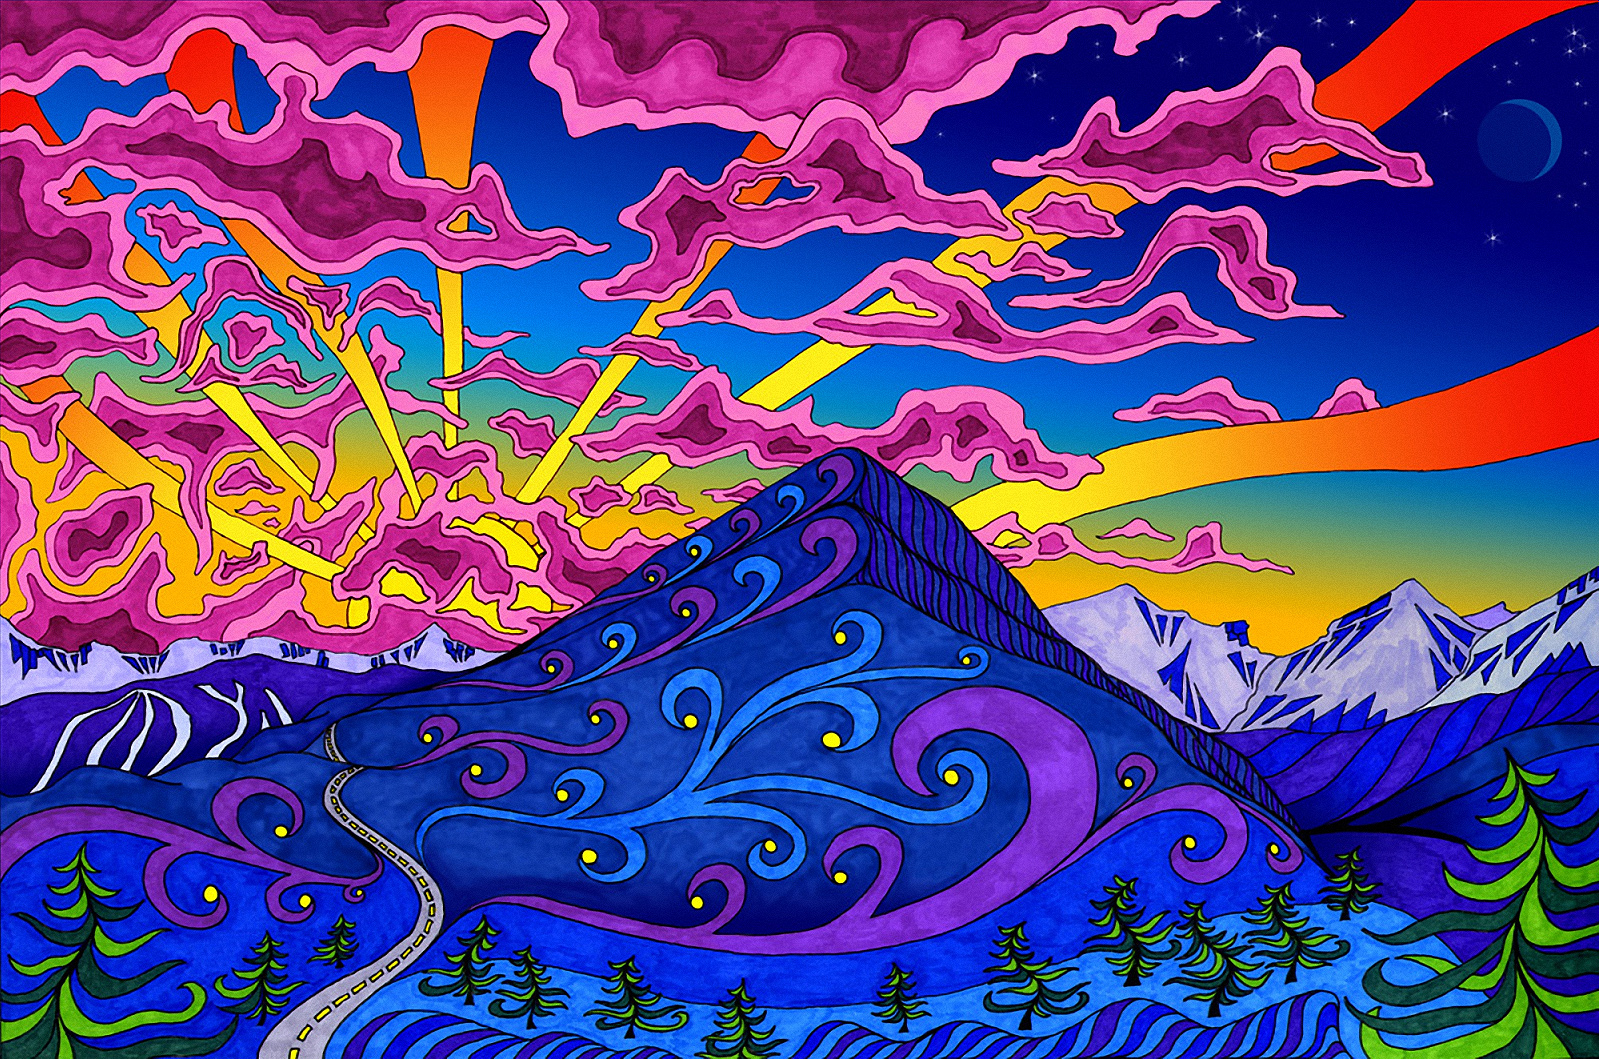 Psychedelic Computer Wallpapers Desktop Backgrounds 1920x1200 1599x1059